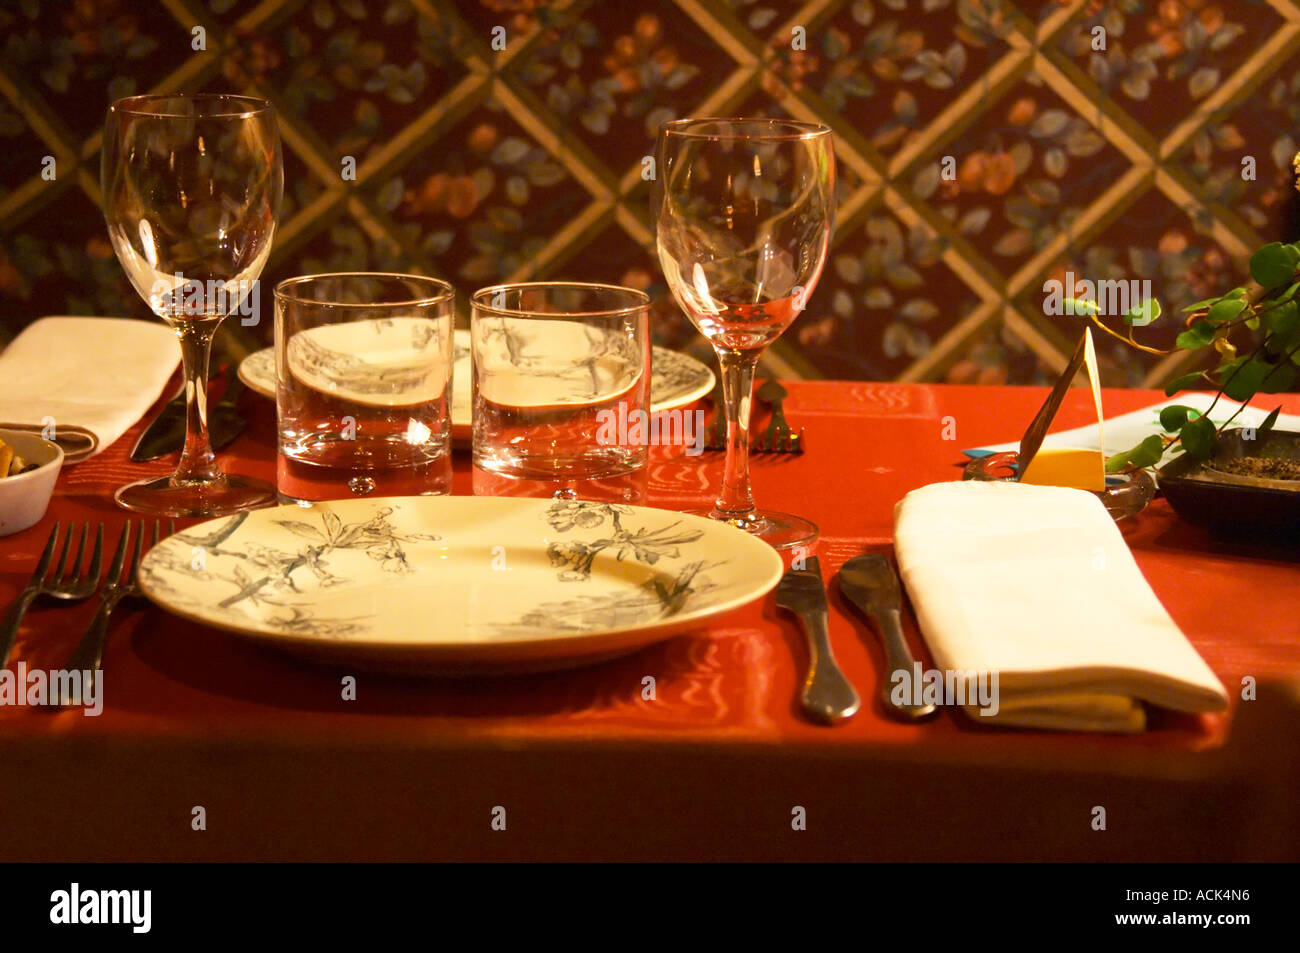 Dining Table Set For Two With Plates, Glasses, Silver Wear, Linen Napkin  And A Red Table Cloth. At The Gastronomic Restaurant Lu0027Enfance De Lard  Bergerac ...